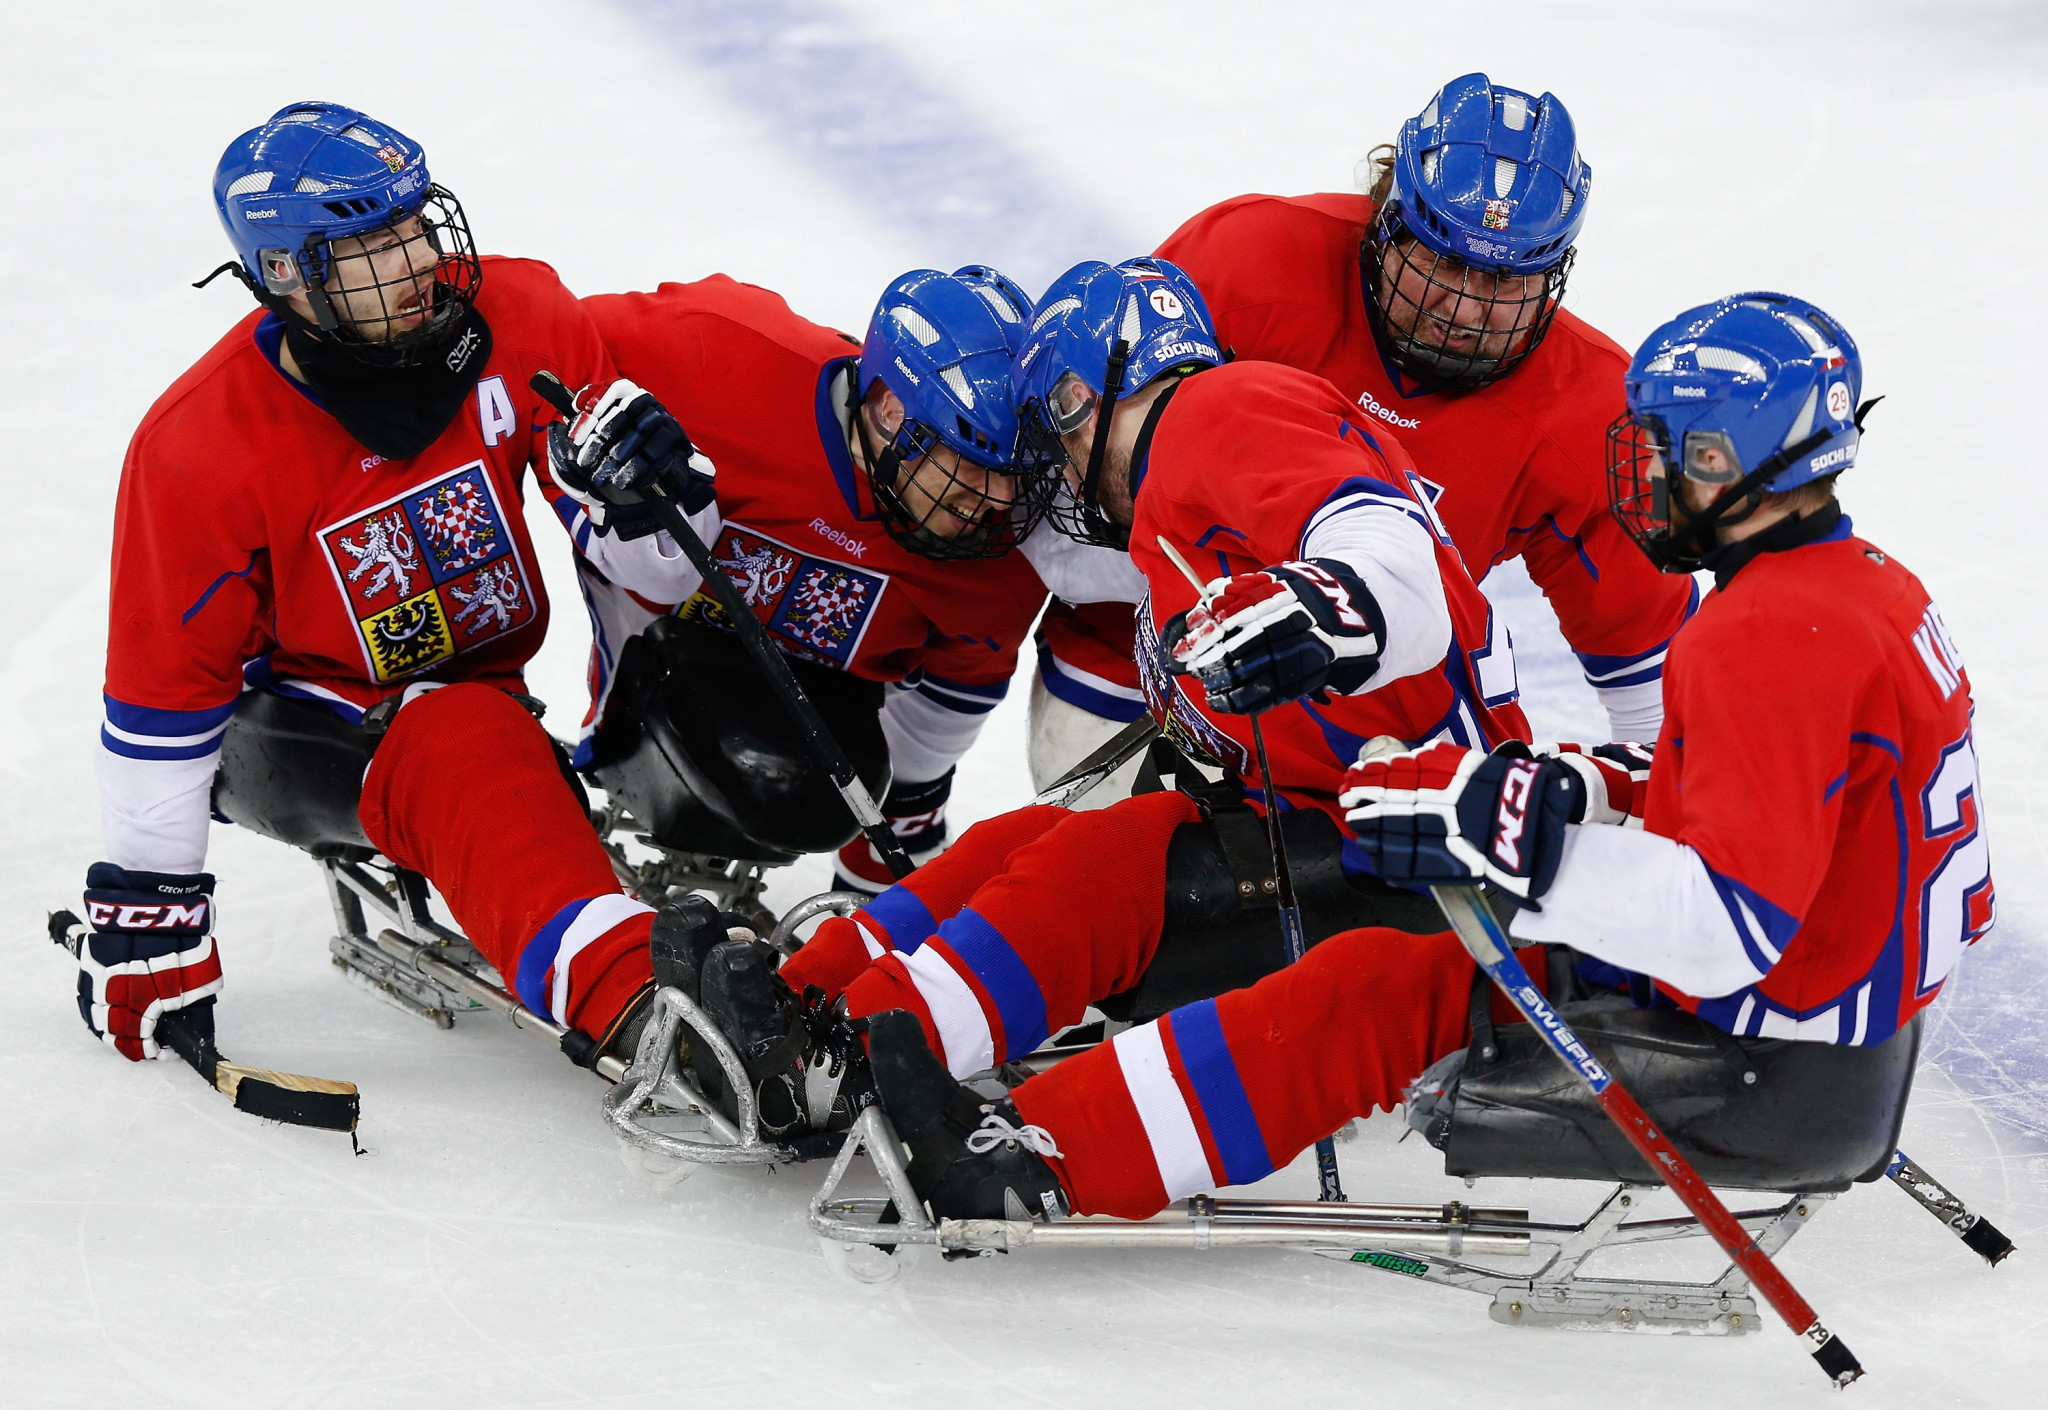 Czech Republic and Japan secure opening wins at World Para Ice Hockey Qualification Tournament